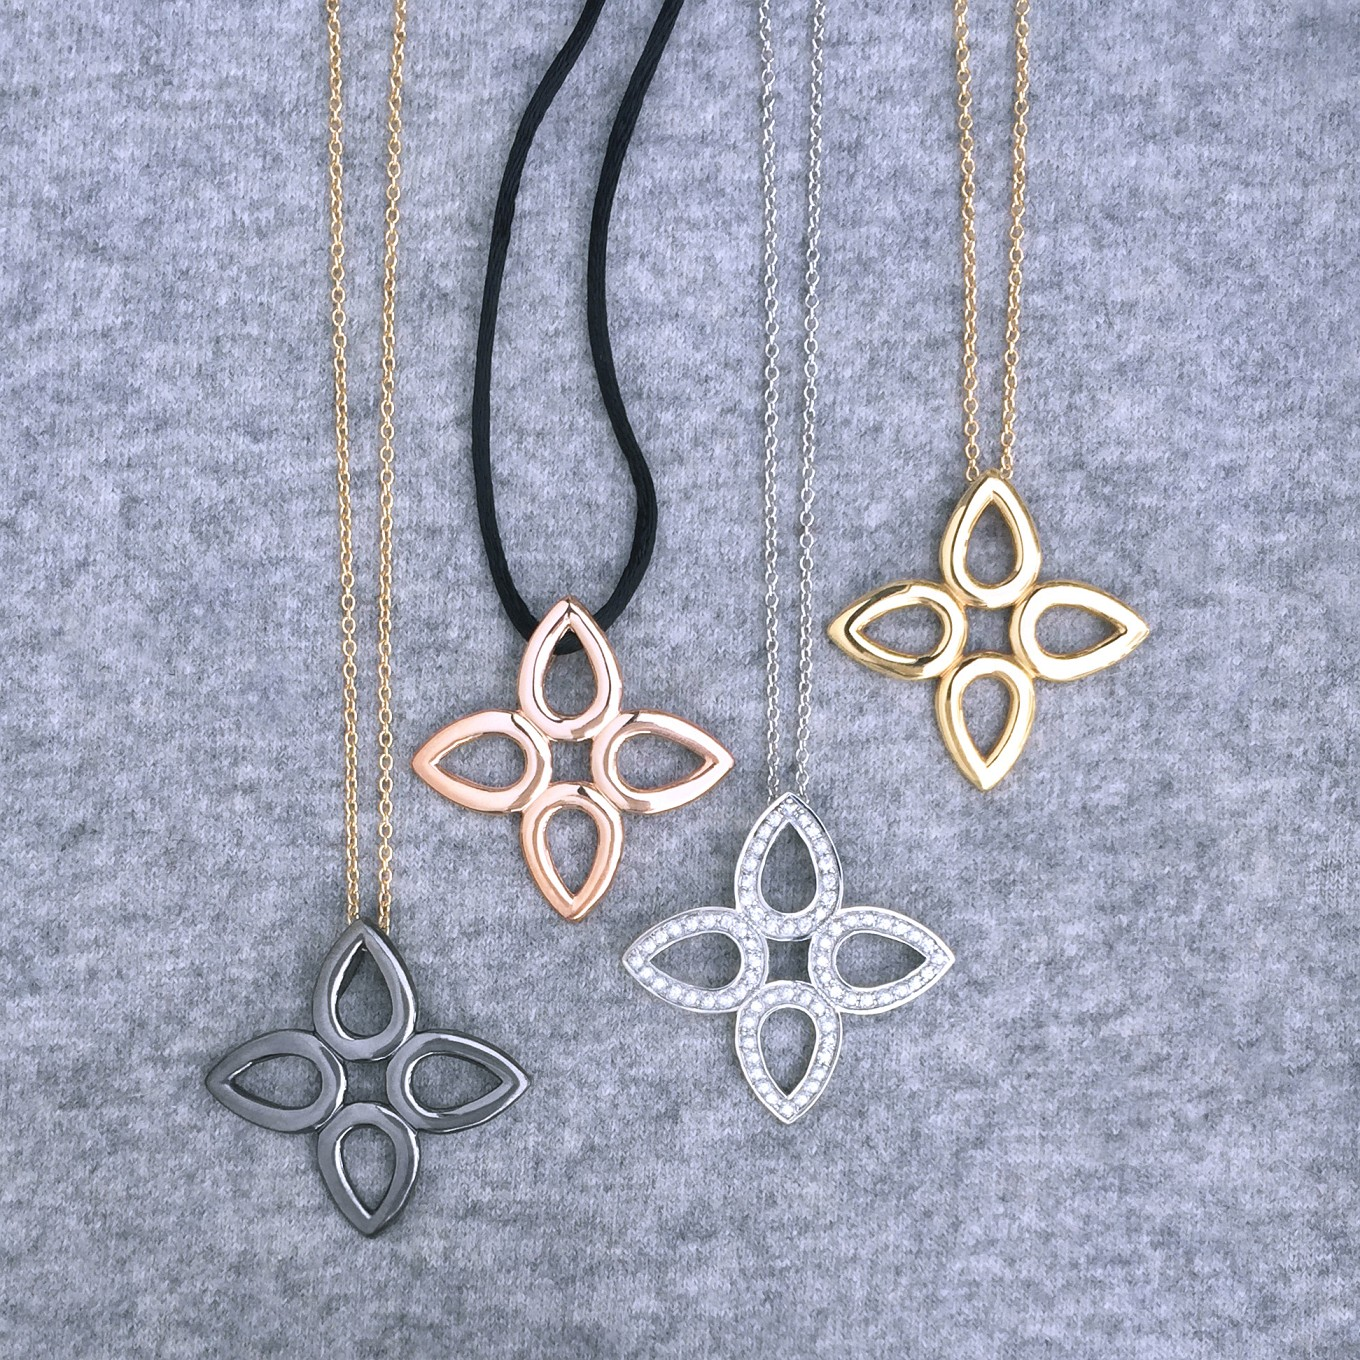 SEVILLA MOTIF PENDANTS FROM LEFT:STERLING SILVER WITH BLACK RHODIUM ON GOLD CHAINSTERLING SILVER WITH ROSE GOLD RHODIUM ON BLACK SILK CORDSTERLING SILVER WITH WHITE SAPPHIREALL YELLOW GOLDALSO AVAILABLE IN STERLING SILVER /  GOLD & DIAMOND